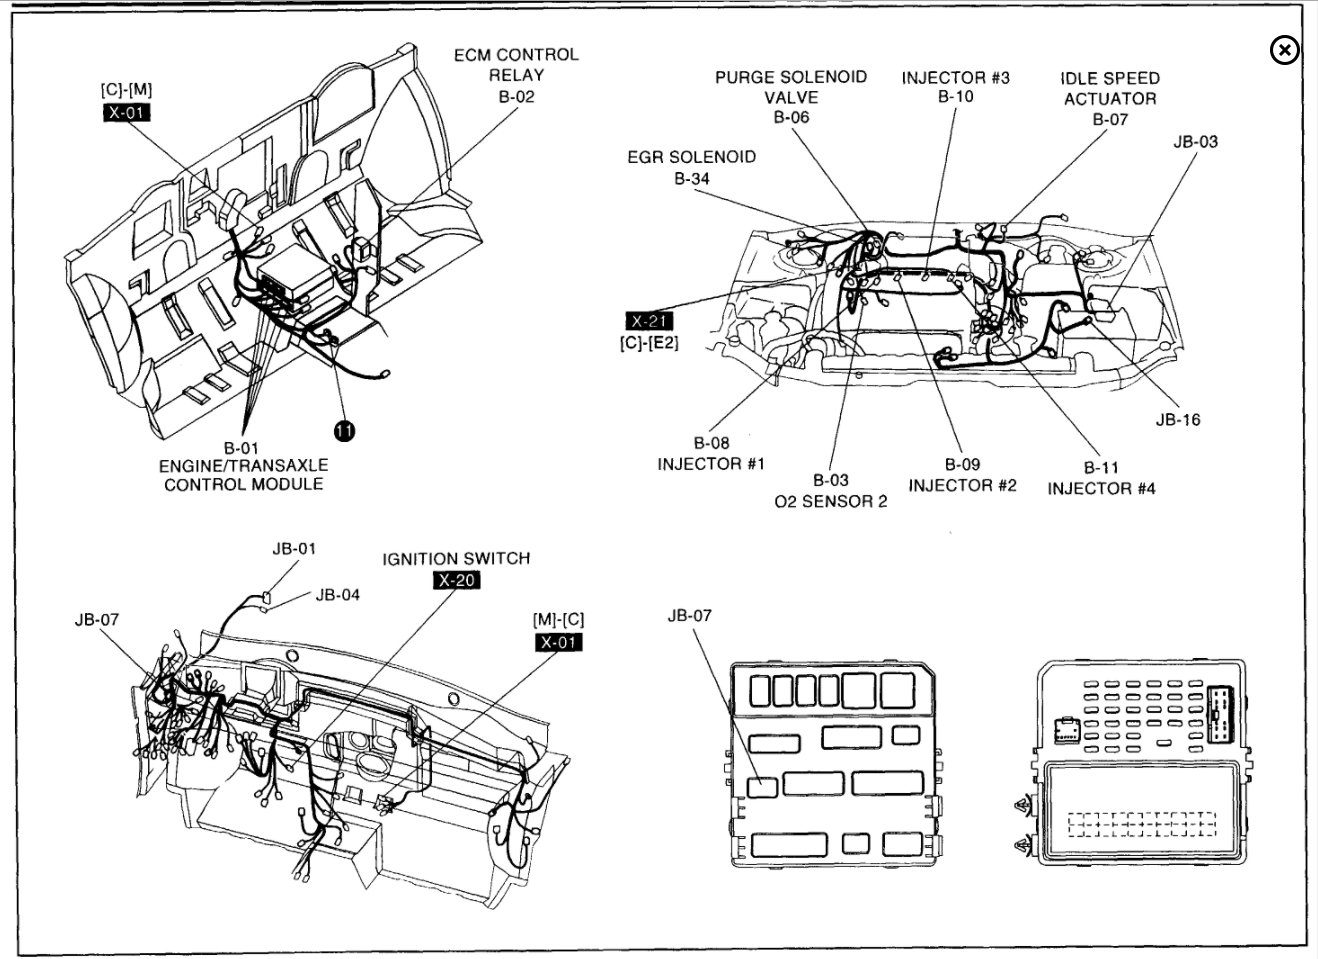 Kia Sedona Fuel Relay Diagram : 29 Wiring Diagram Images